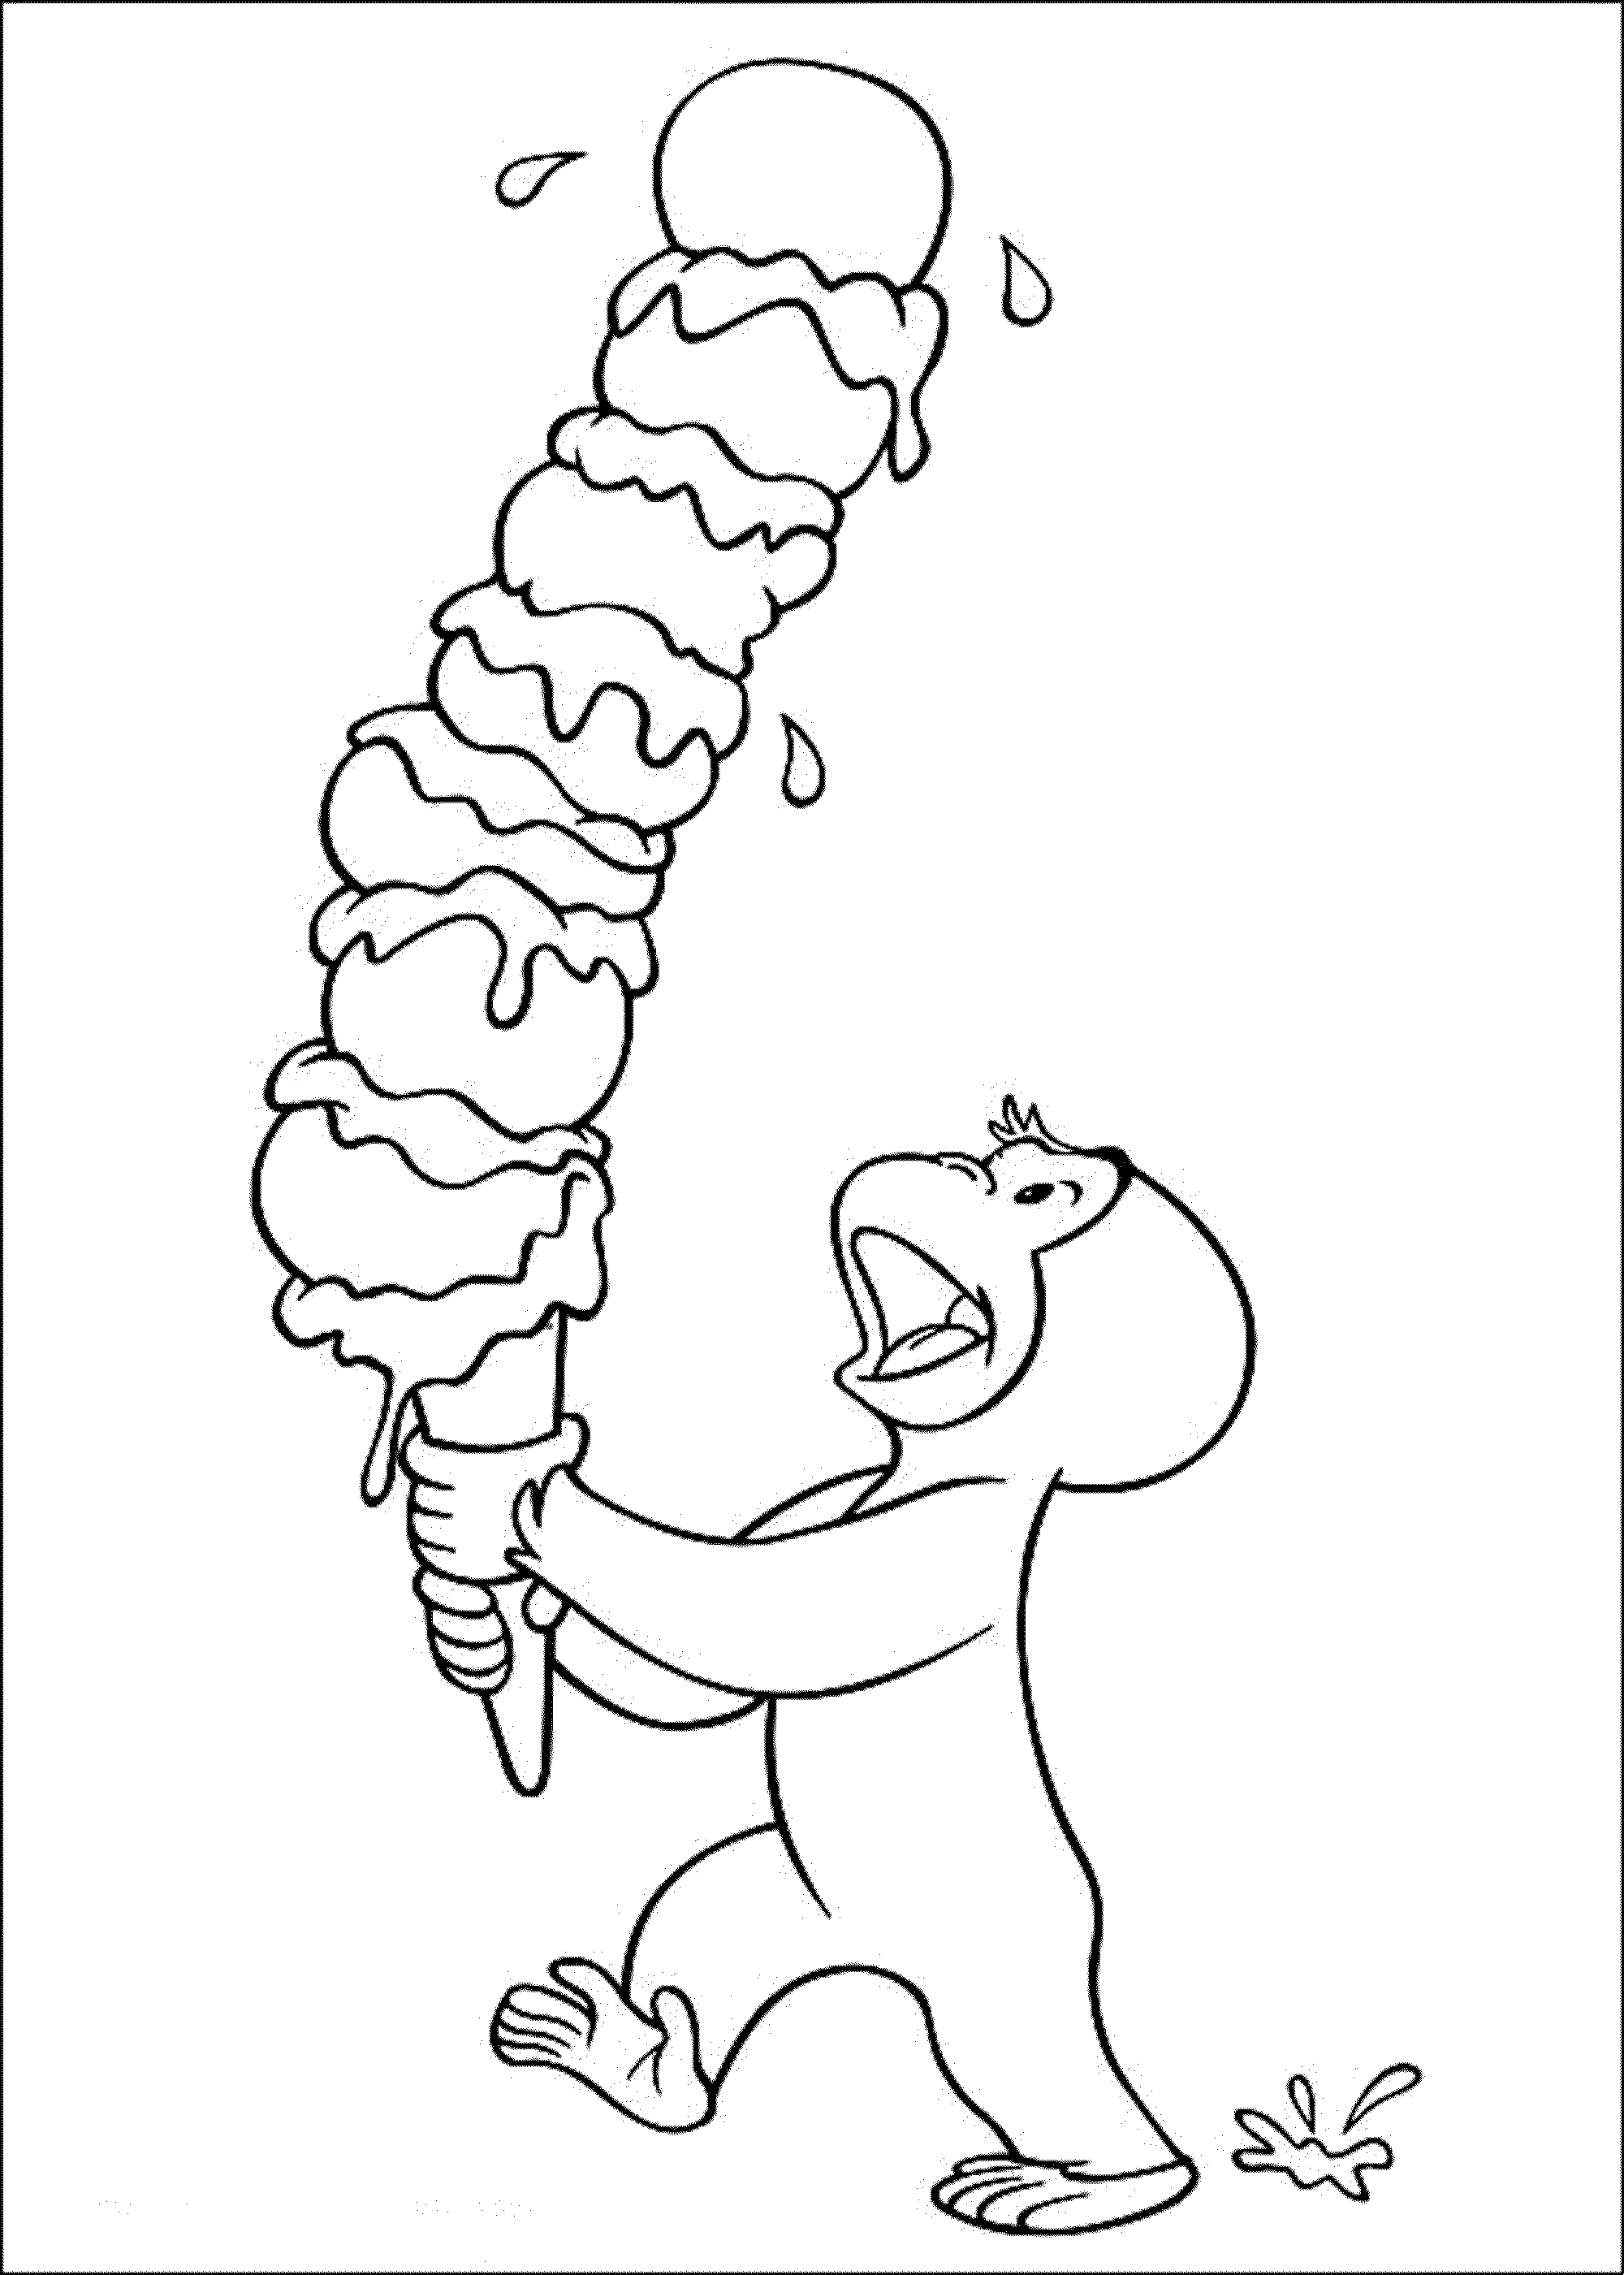 curious george christmas coloring pages - photo#7